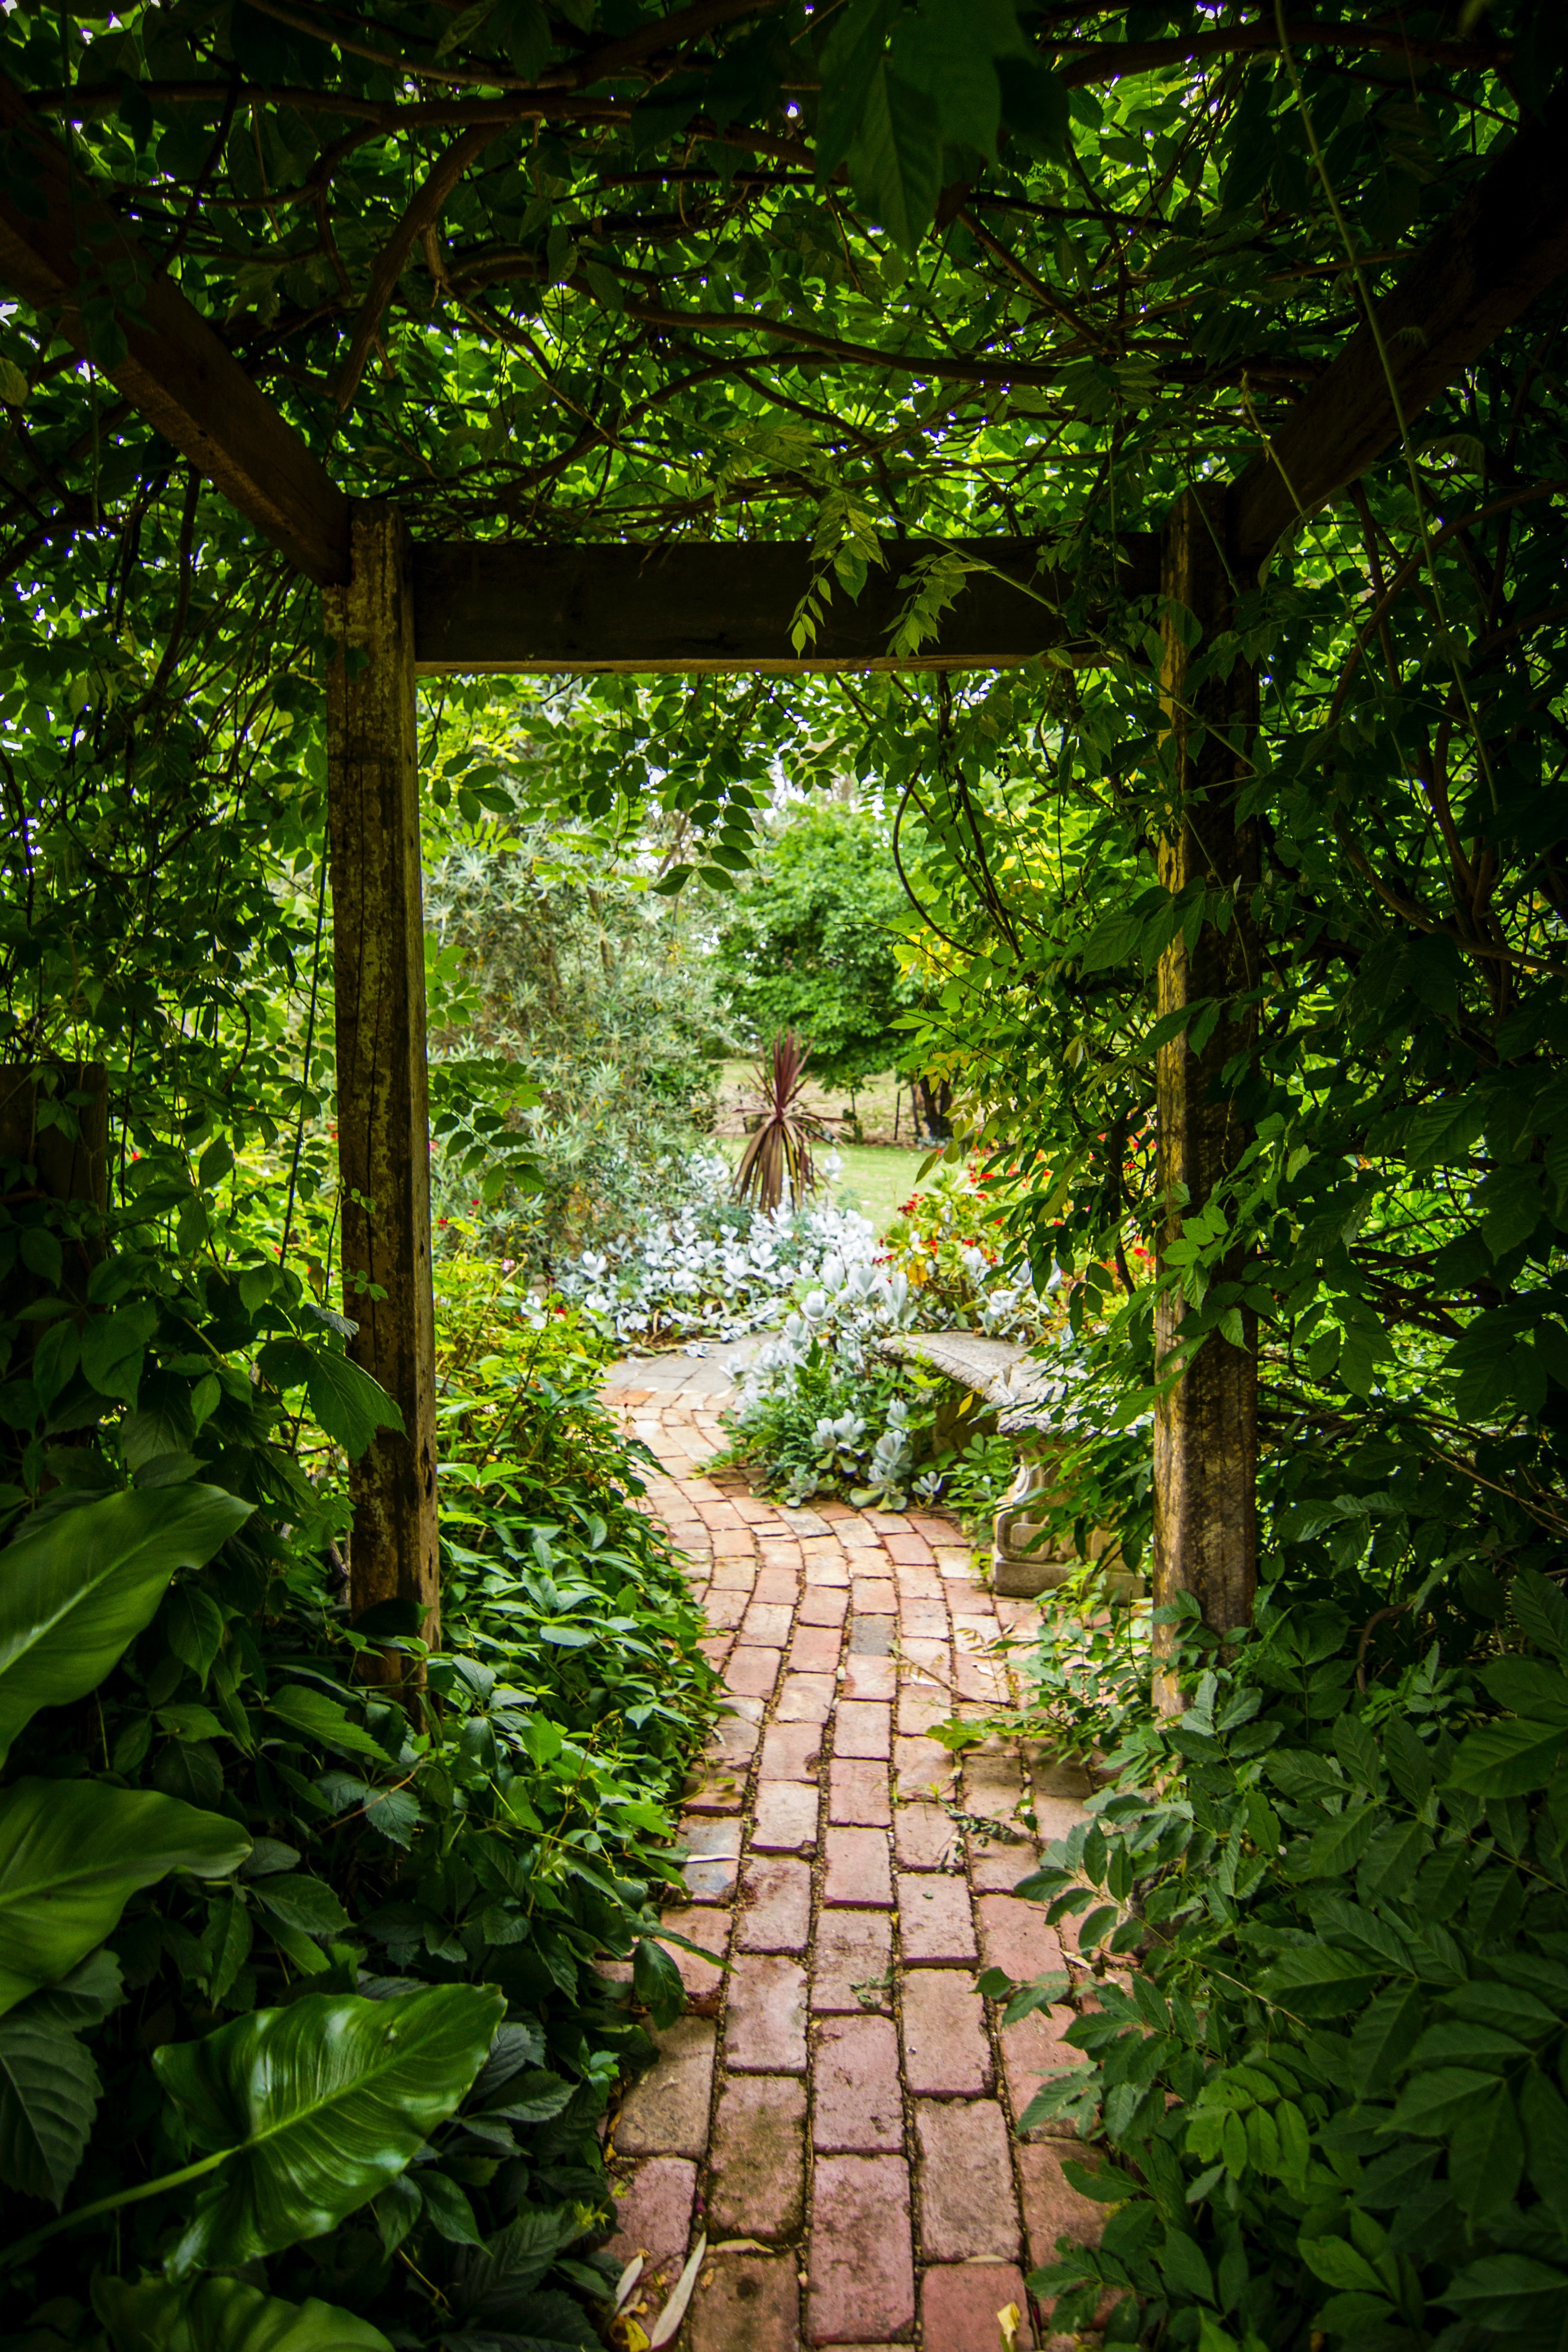 A brick pathway leading to a lush, green garden.